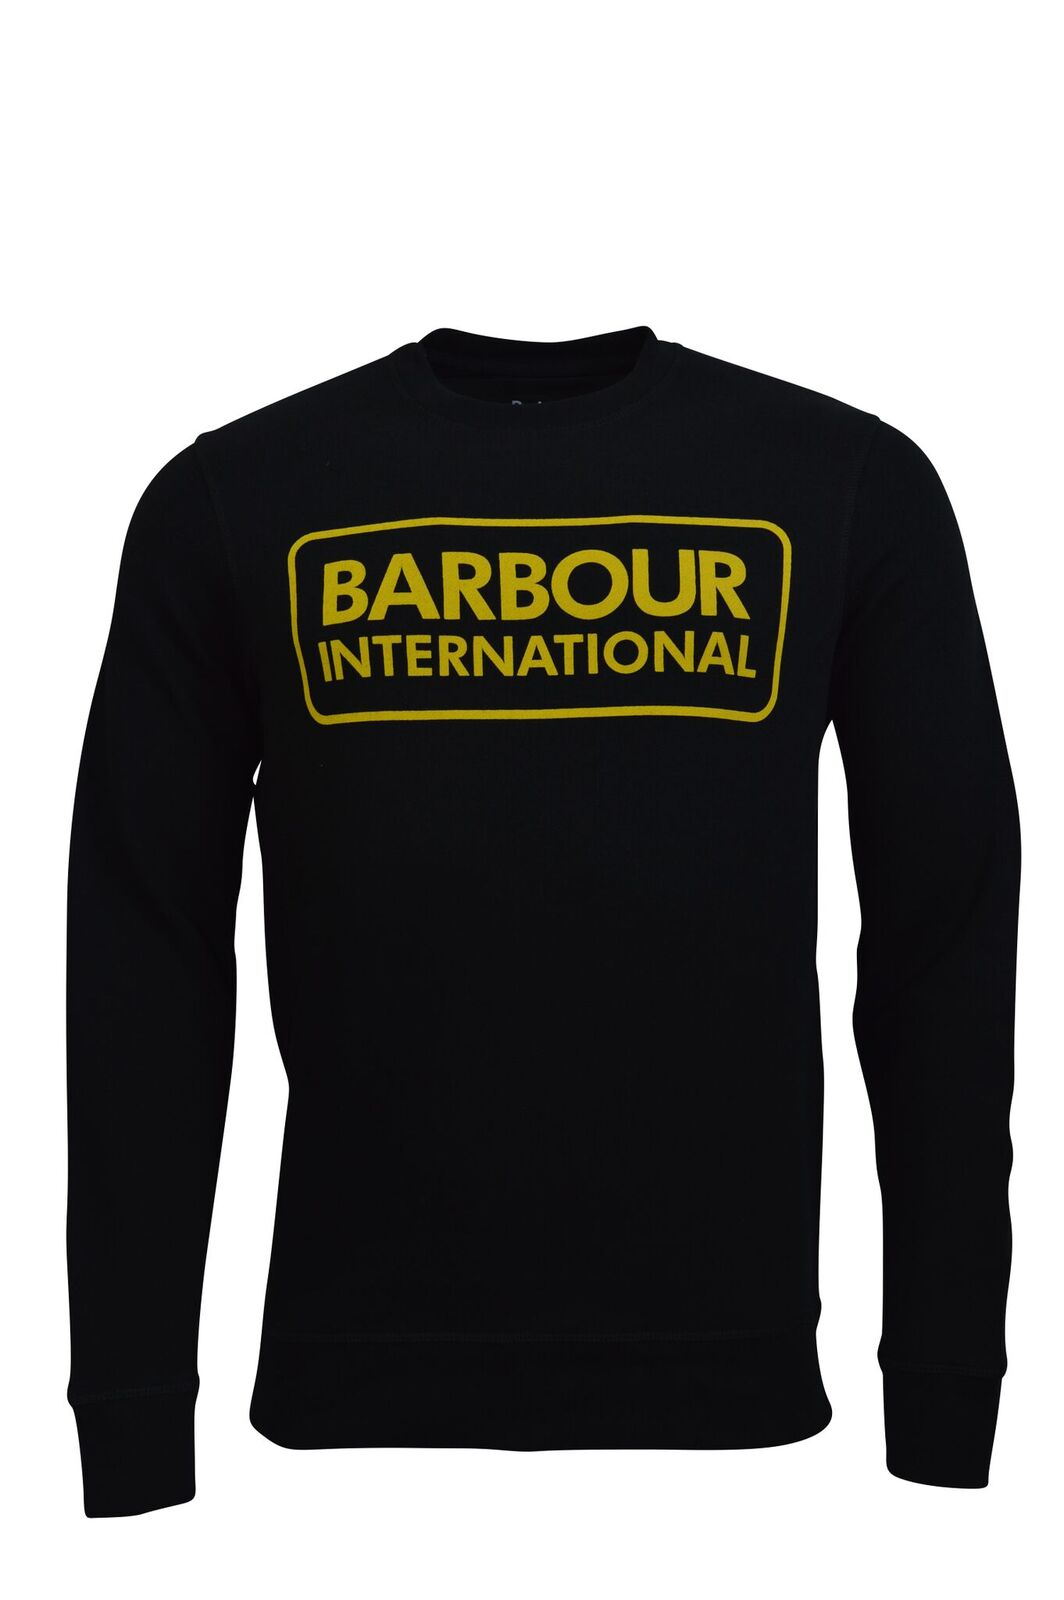 Barbour International - Large Logo Sweatshirt - Black